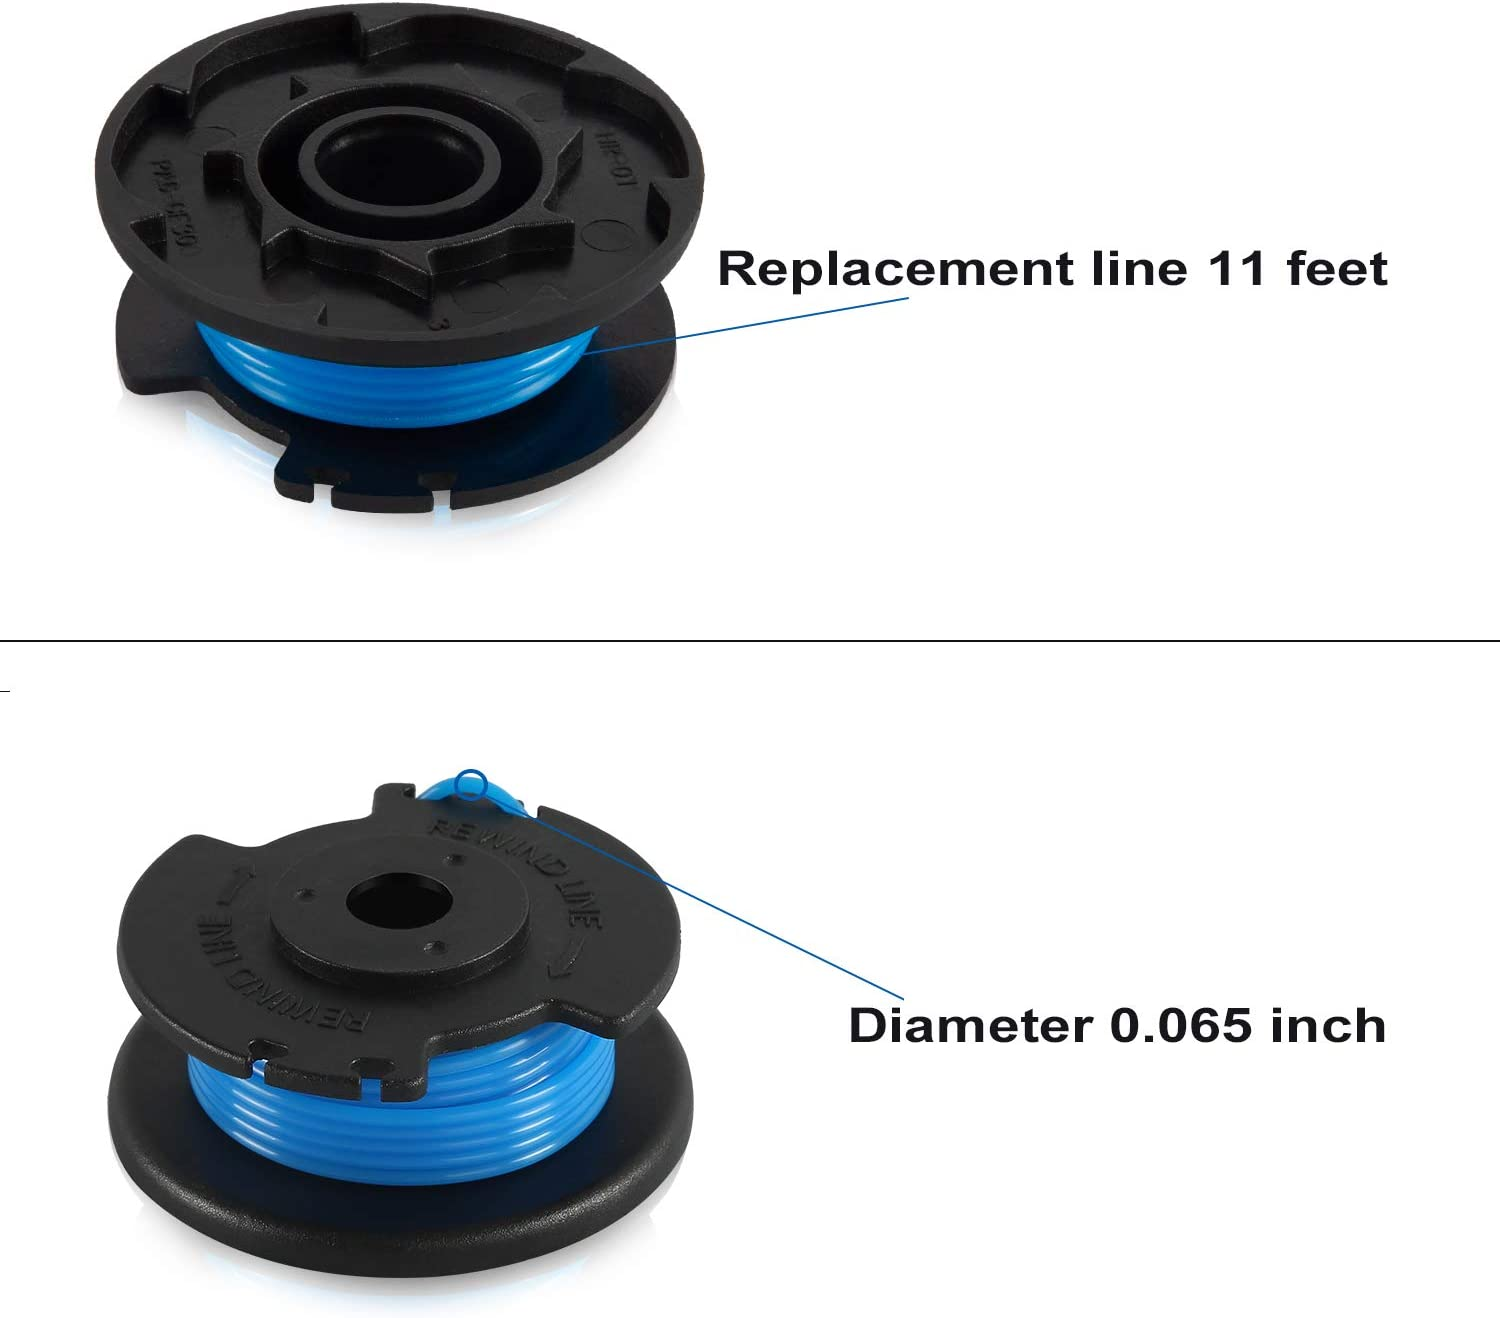 4 Spools + 2 Caps Amityke String Trimmer Replacement Spool Line ...